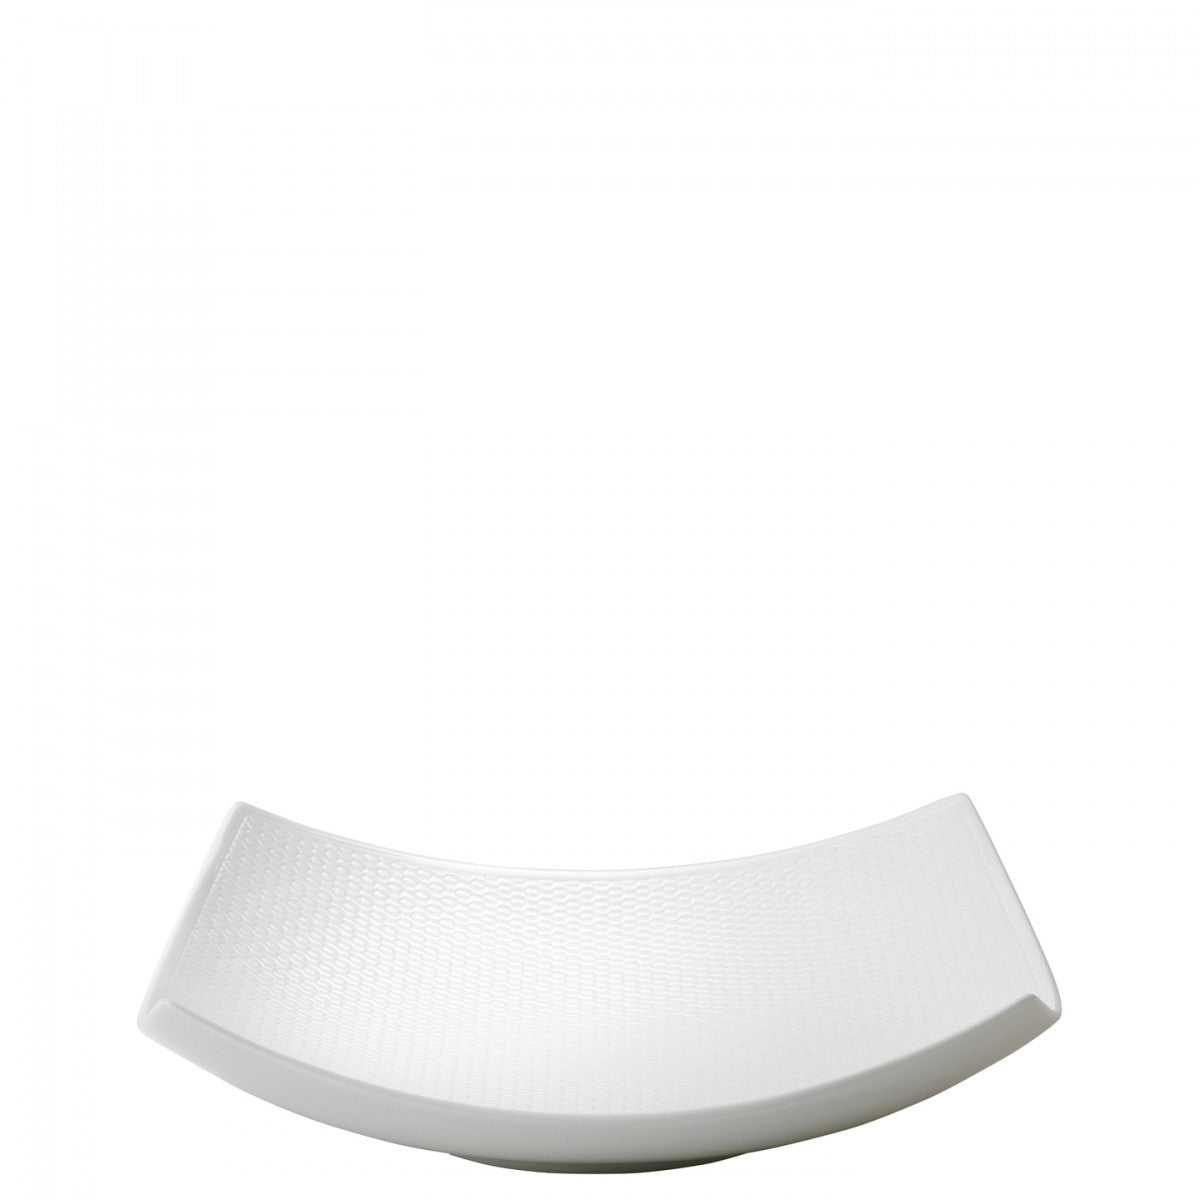 Gio Sculptural Bowl